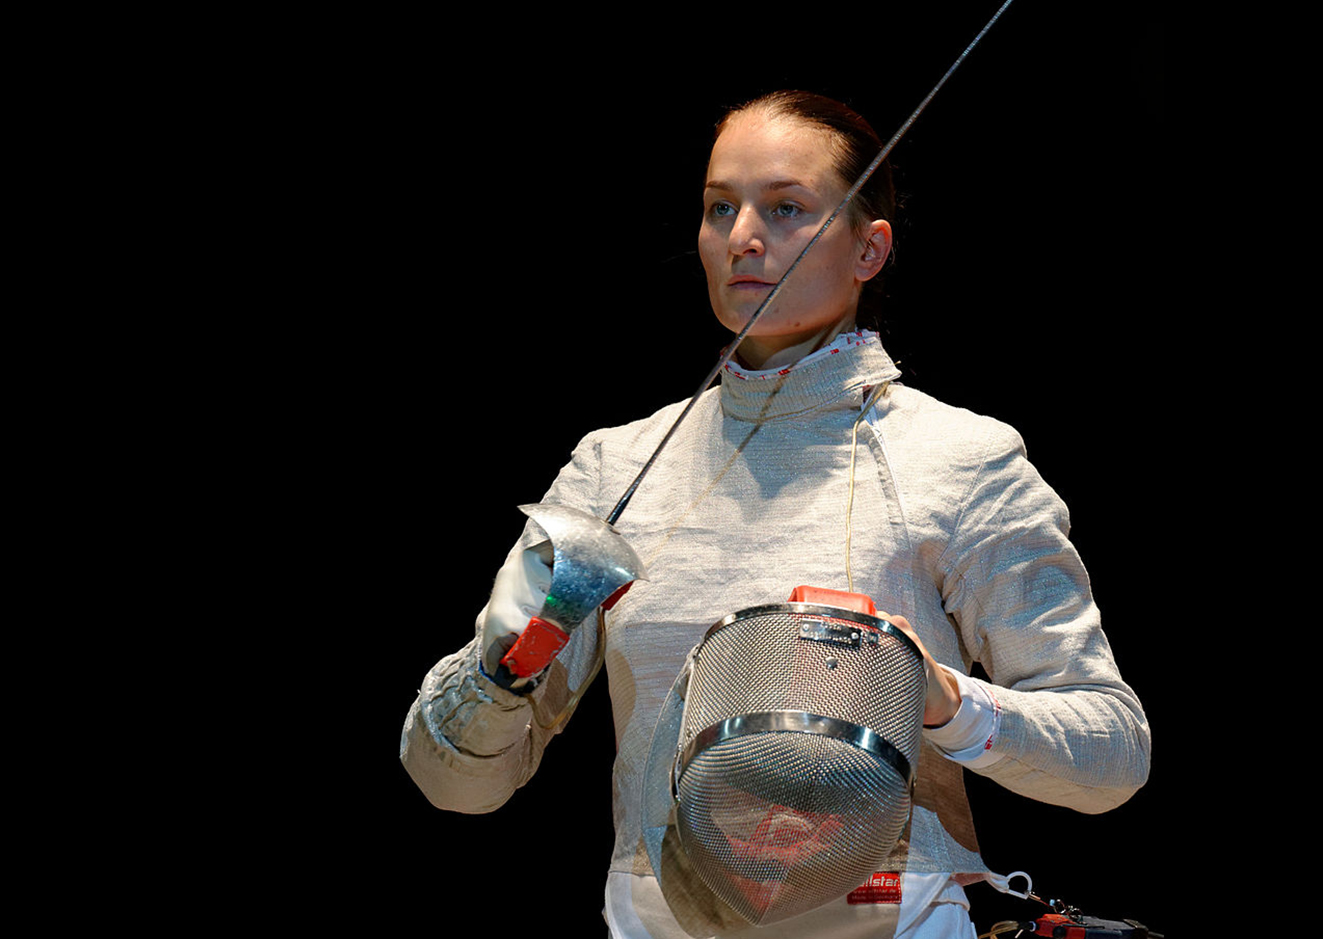 Russian and French female sabre fencers to open the SPIEF 2018 sporting programme